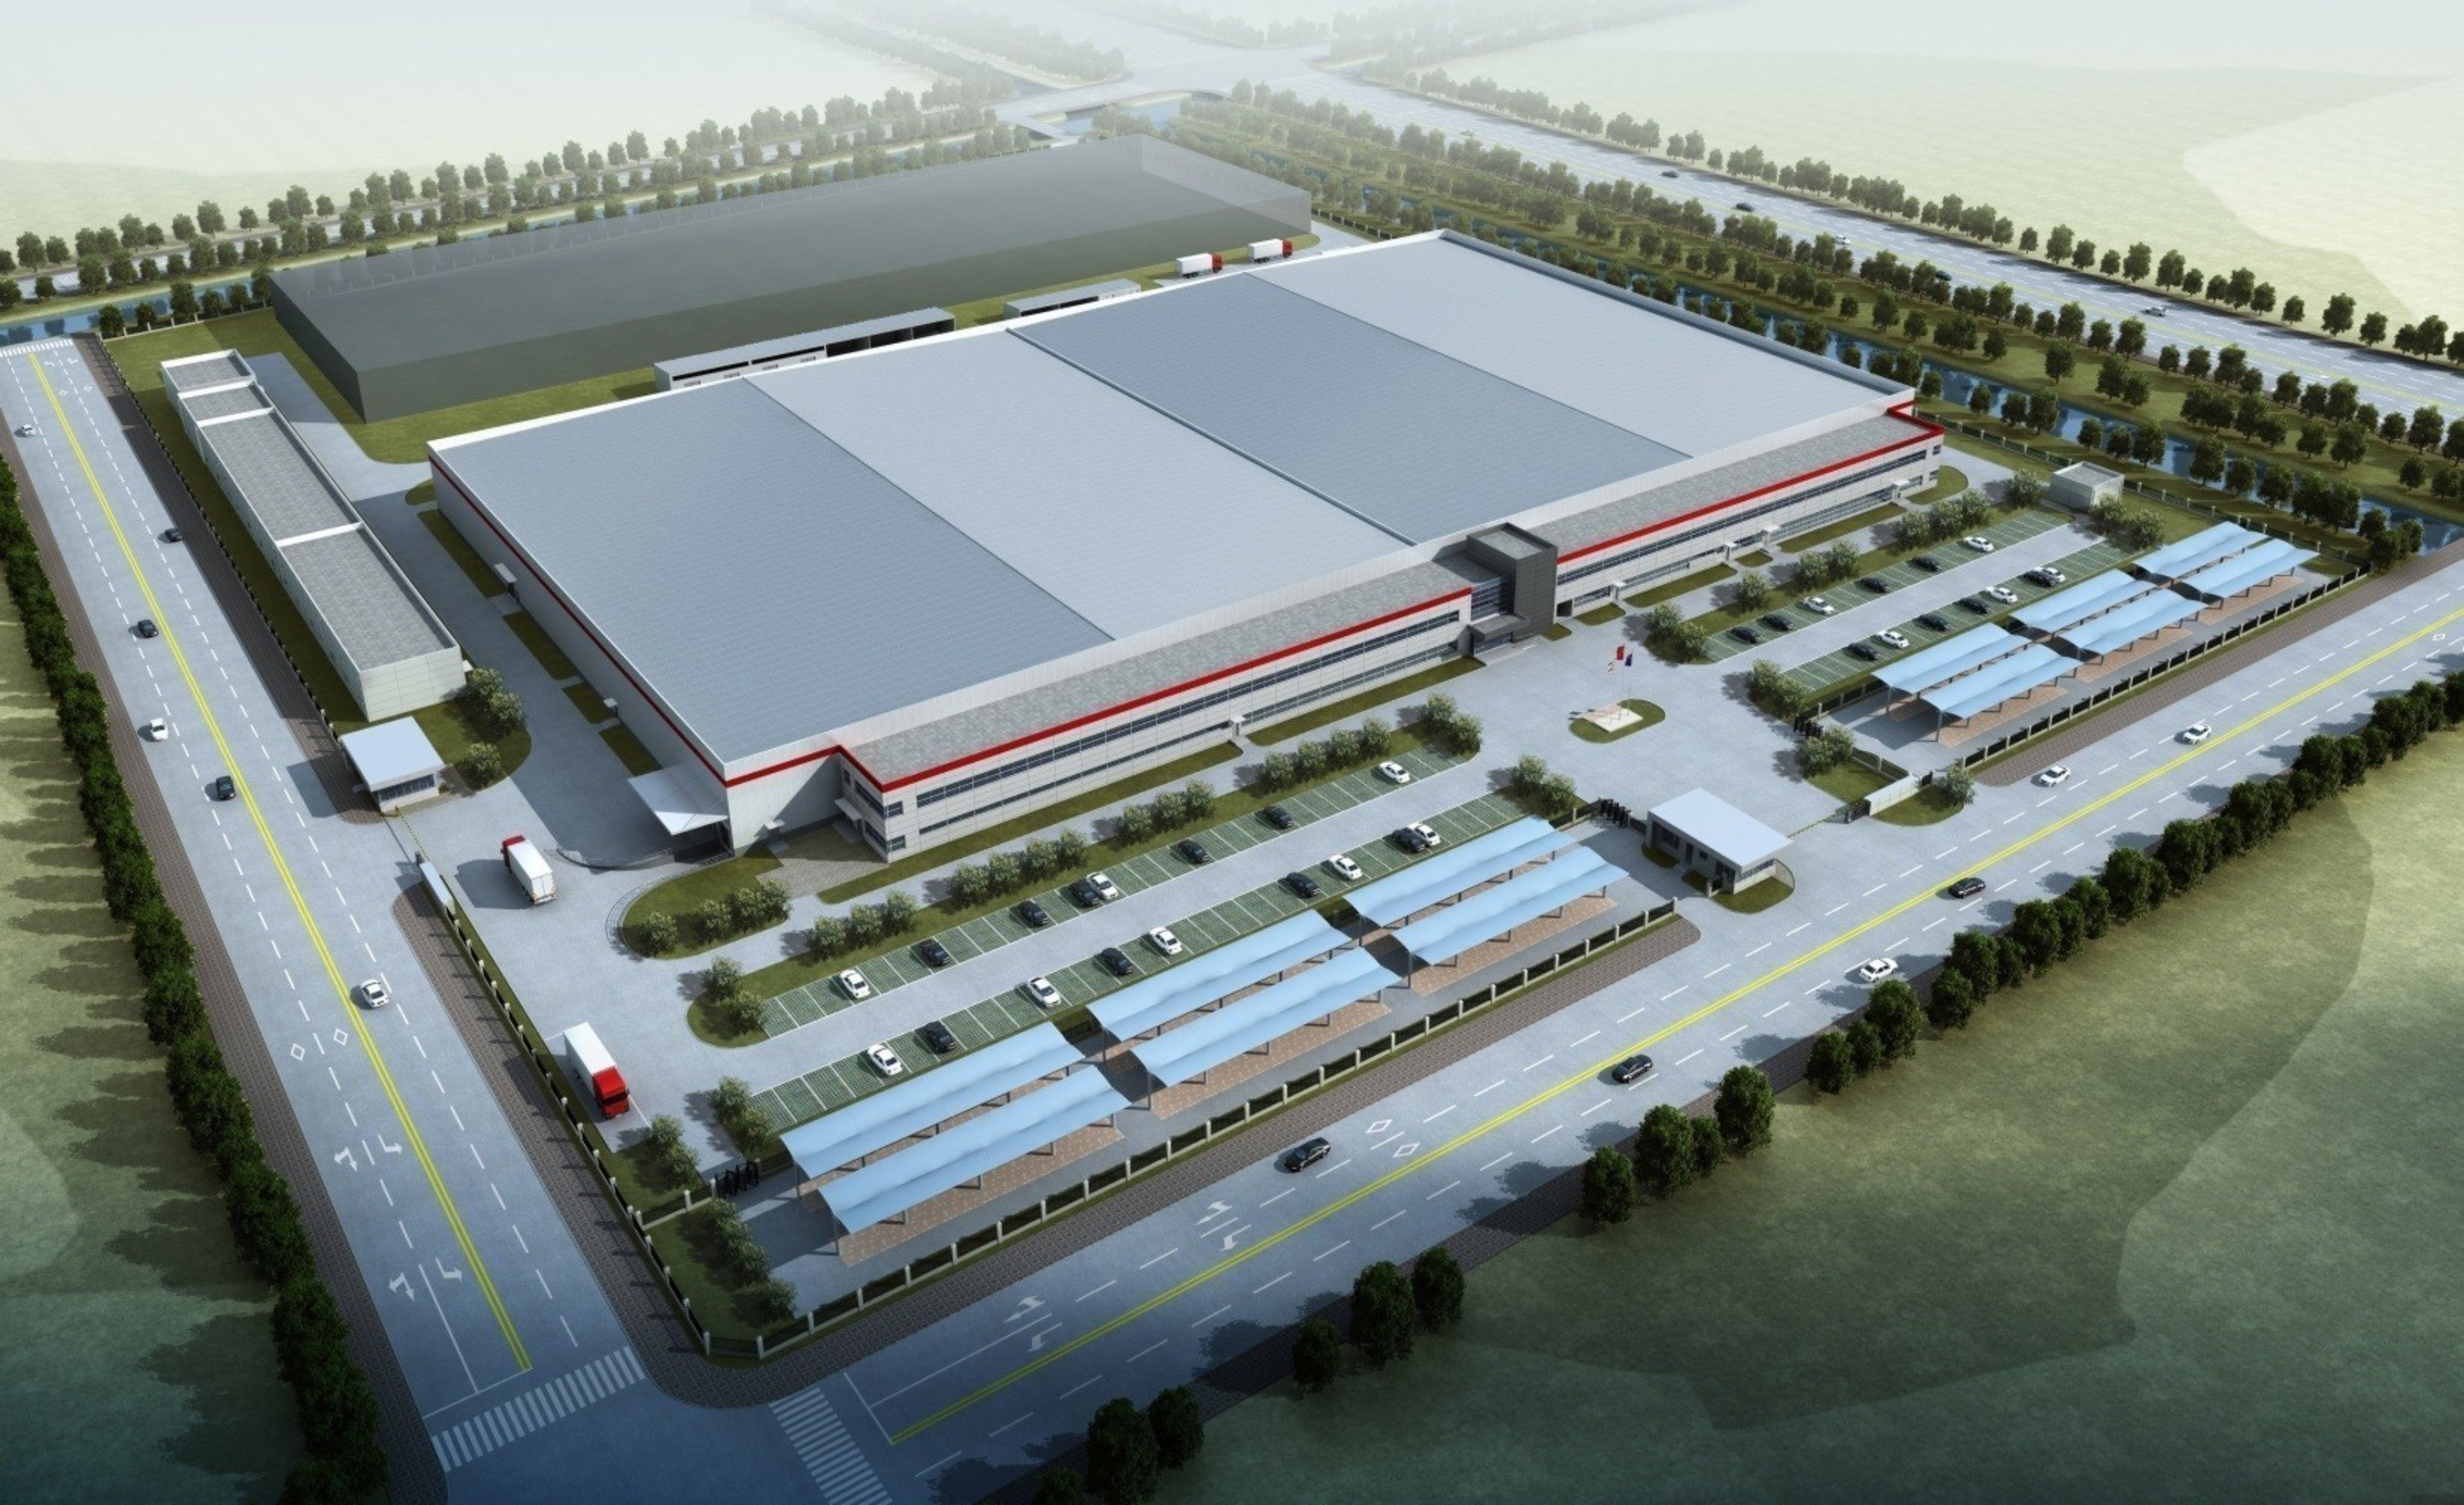 Concept Rendering of Eagle Ottawa by Lear in Yangzhou, China